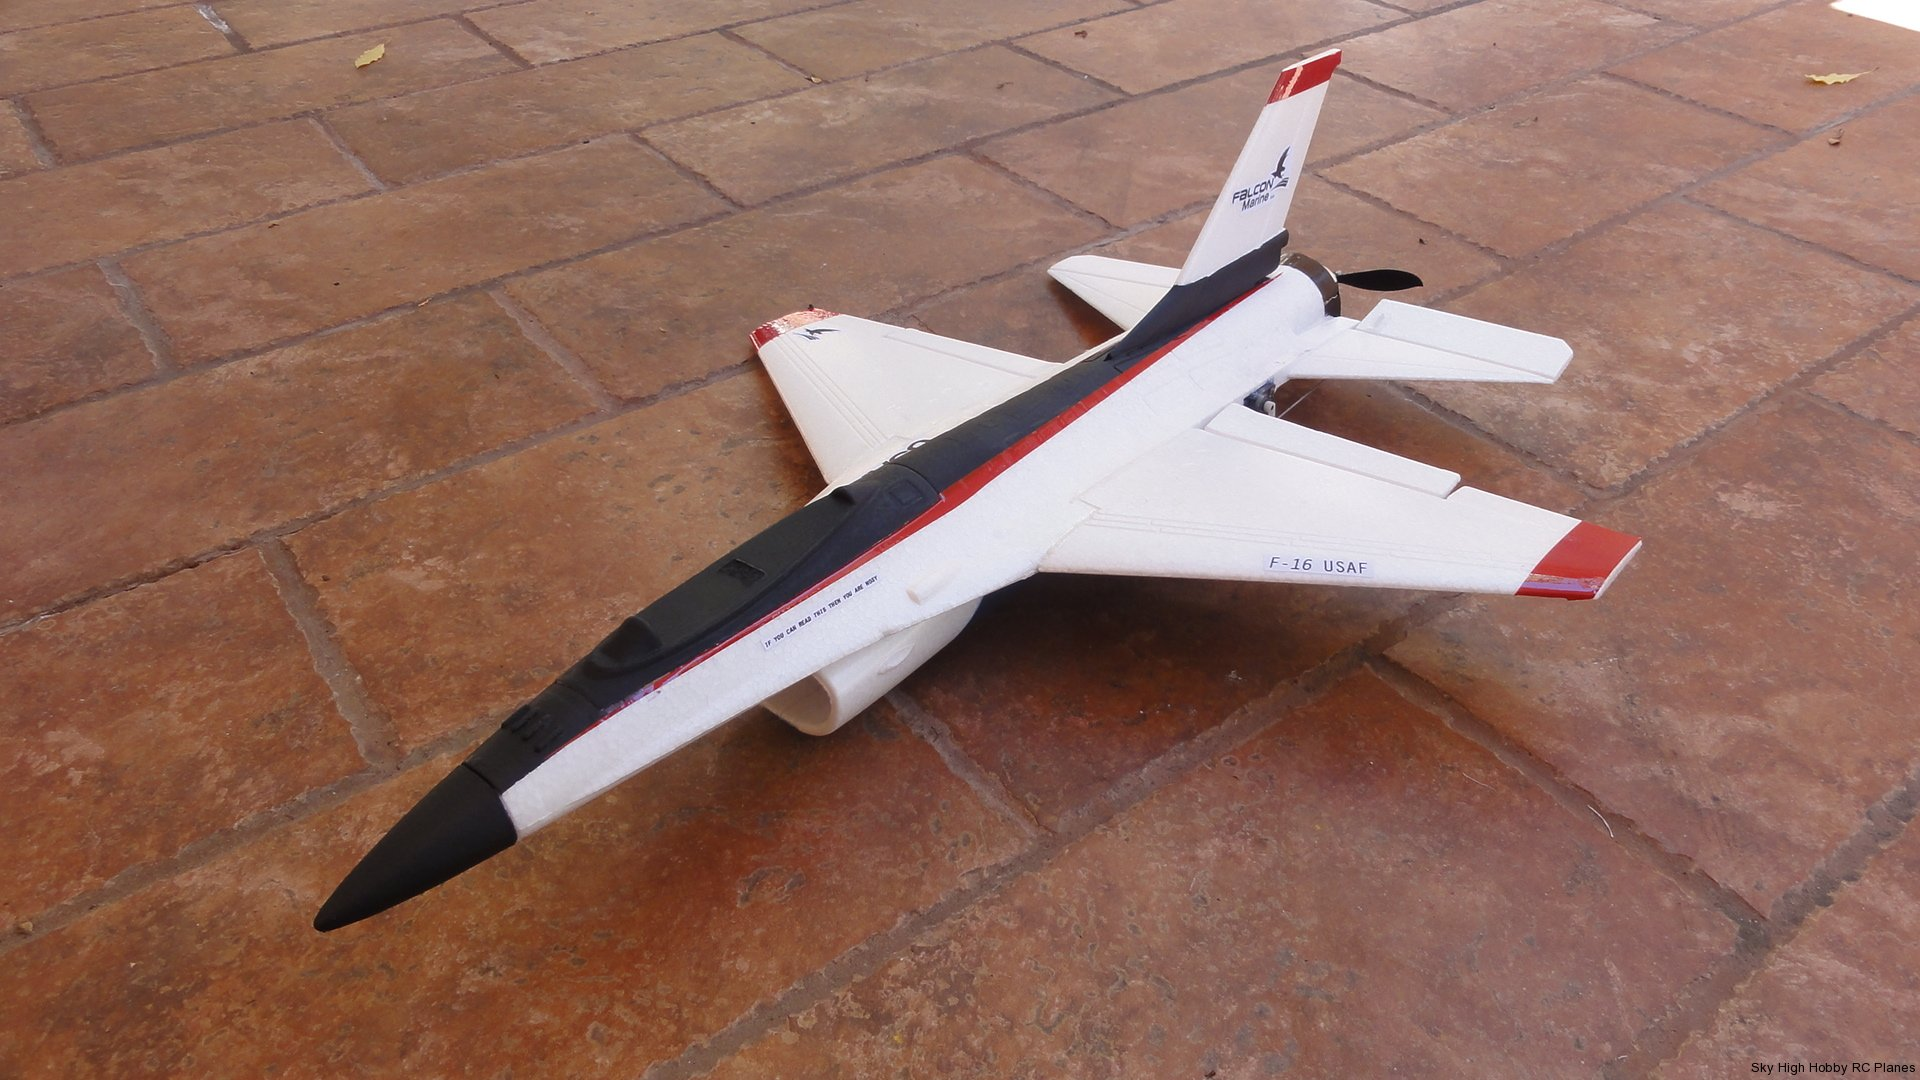 rc model jets for sale with Rc Airplanes Jets Quarterback on Rc Airplanes Jets Quarterback moreover Drone Wars X 47b Makes First Successful Landing furthermore Plan Zogling Sg 35 1 3 Scale Glider likewise Watch further American Cities May Have Aerial Drones By 2013.